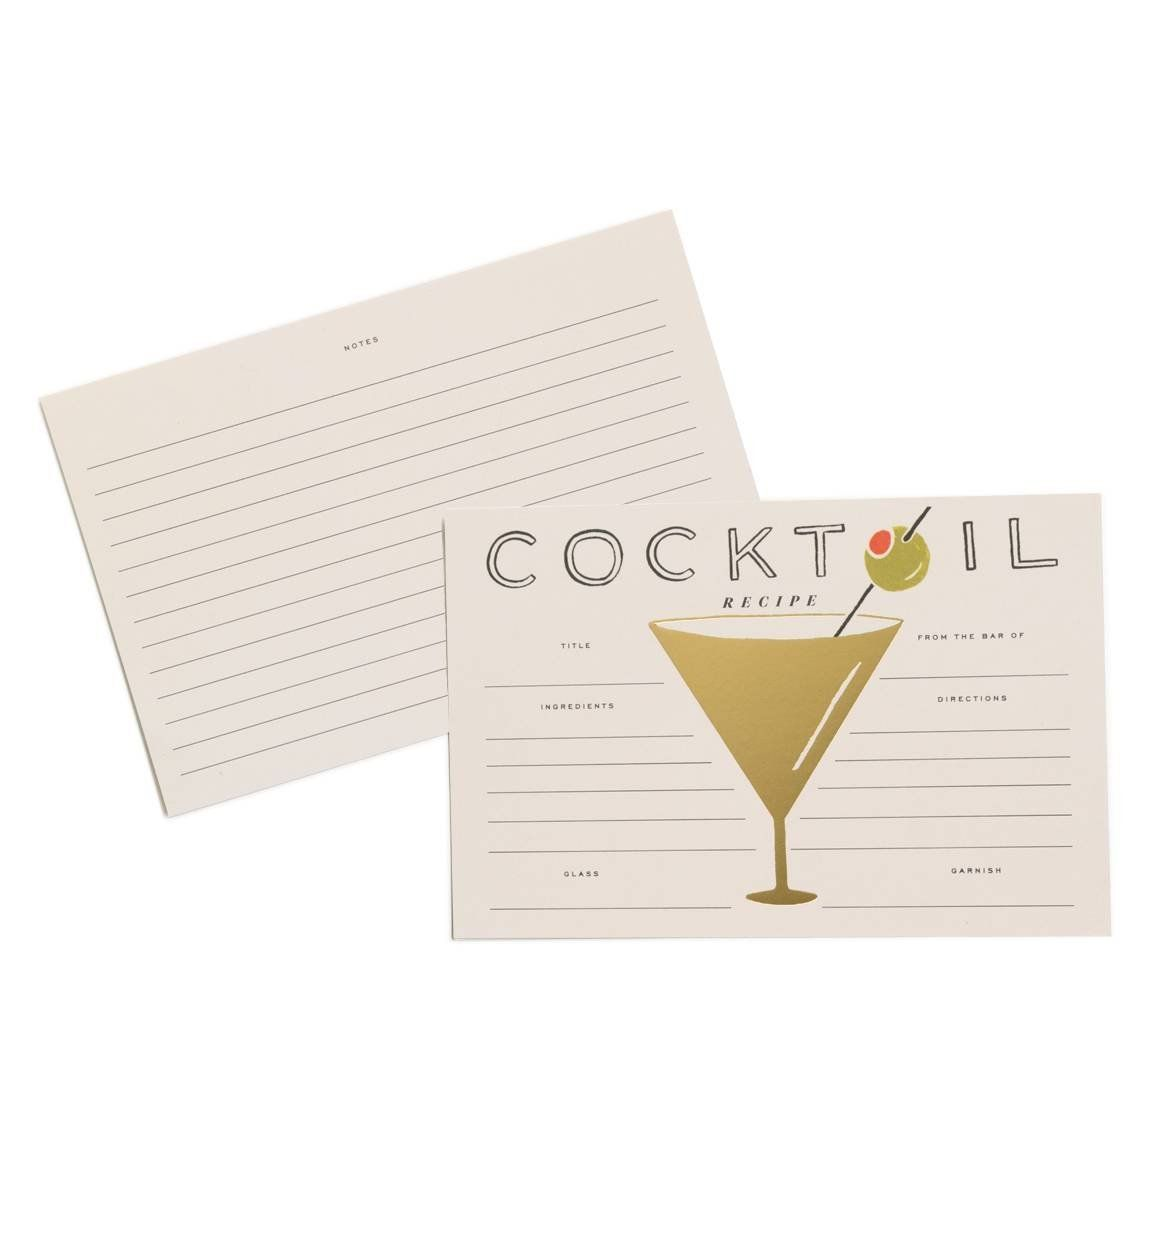 Rifle Paper Co. Gold Foil Cocktail 4' x 6' Recipe Cards -- Set of 12 Cards *** For more information, visit image link.